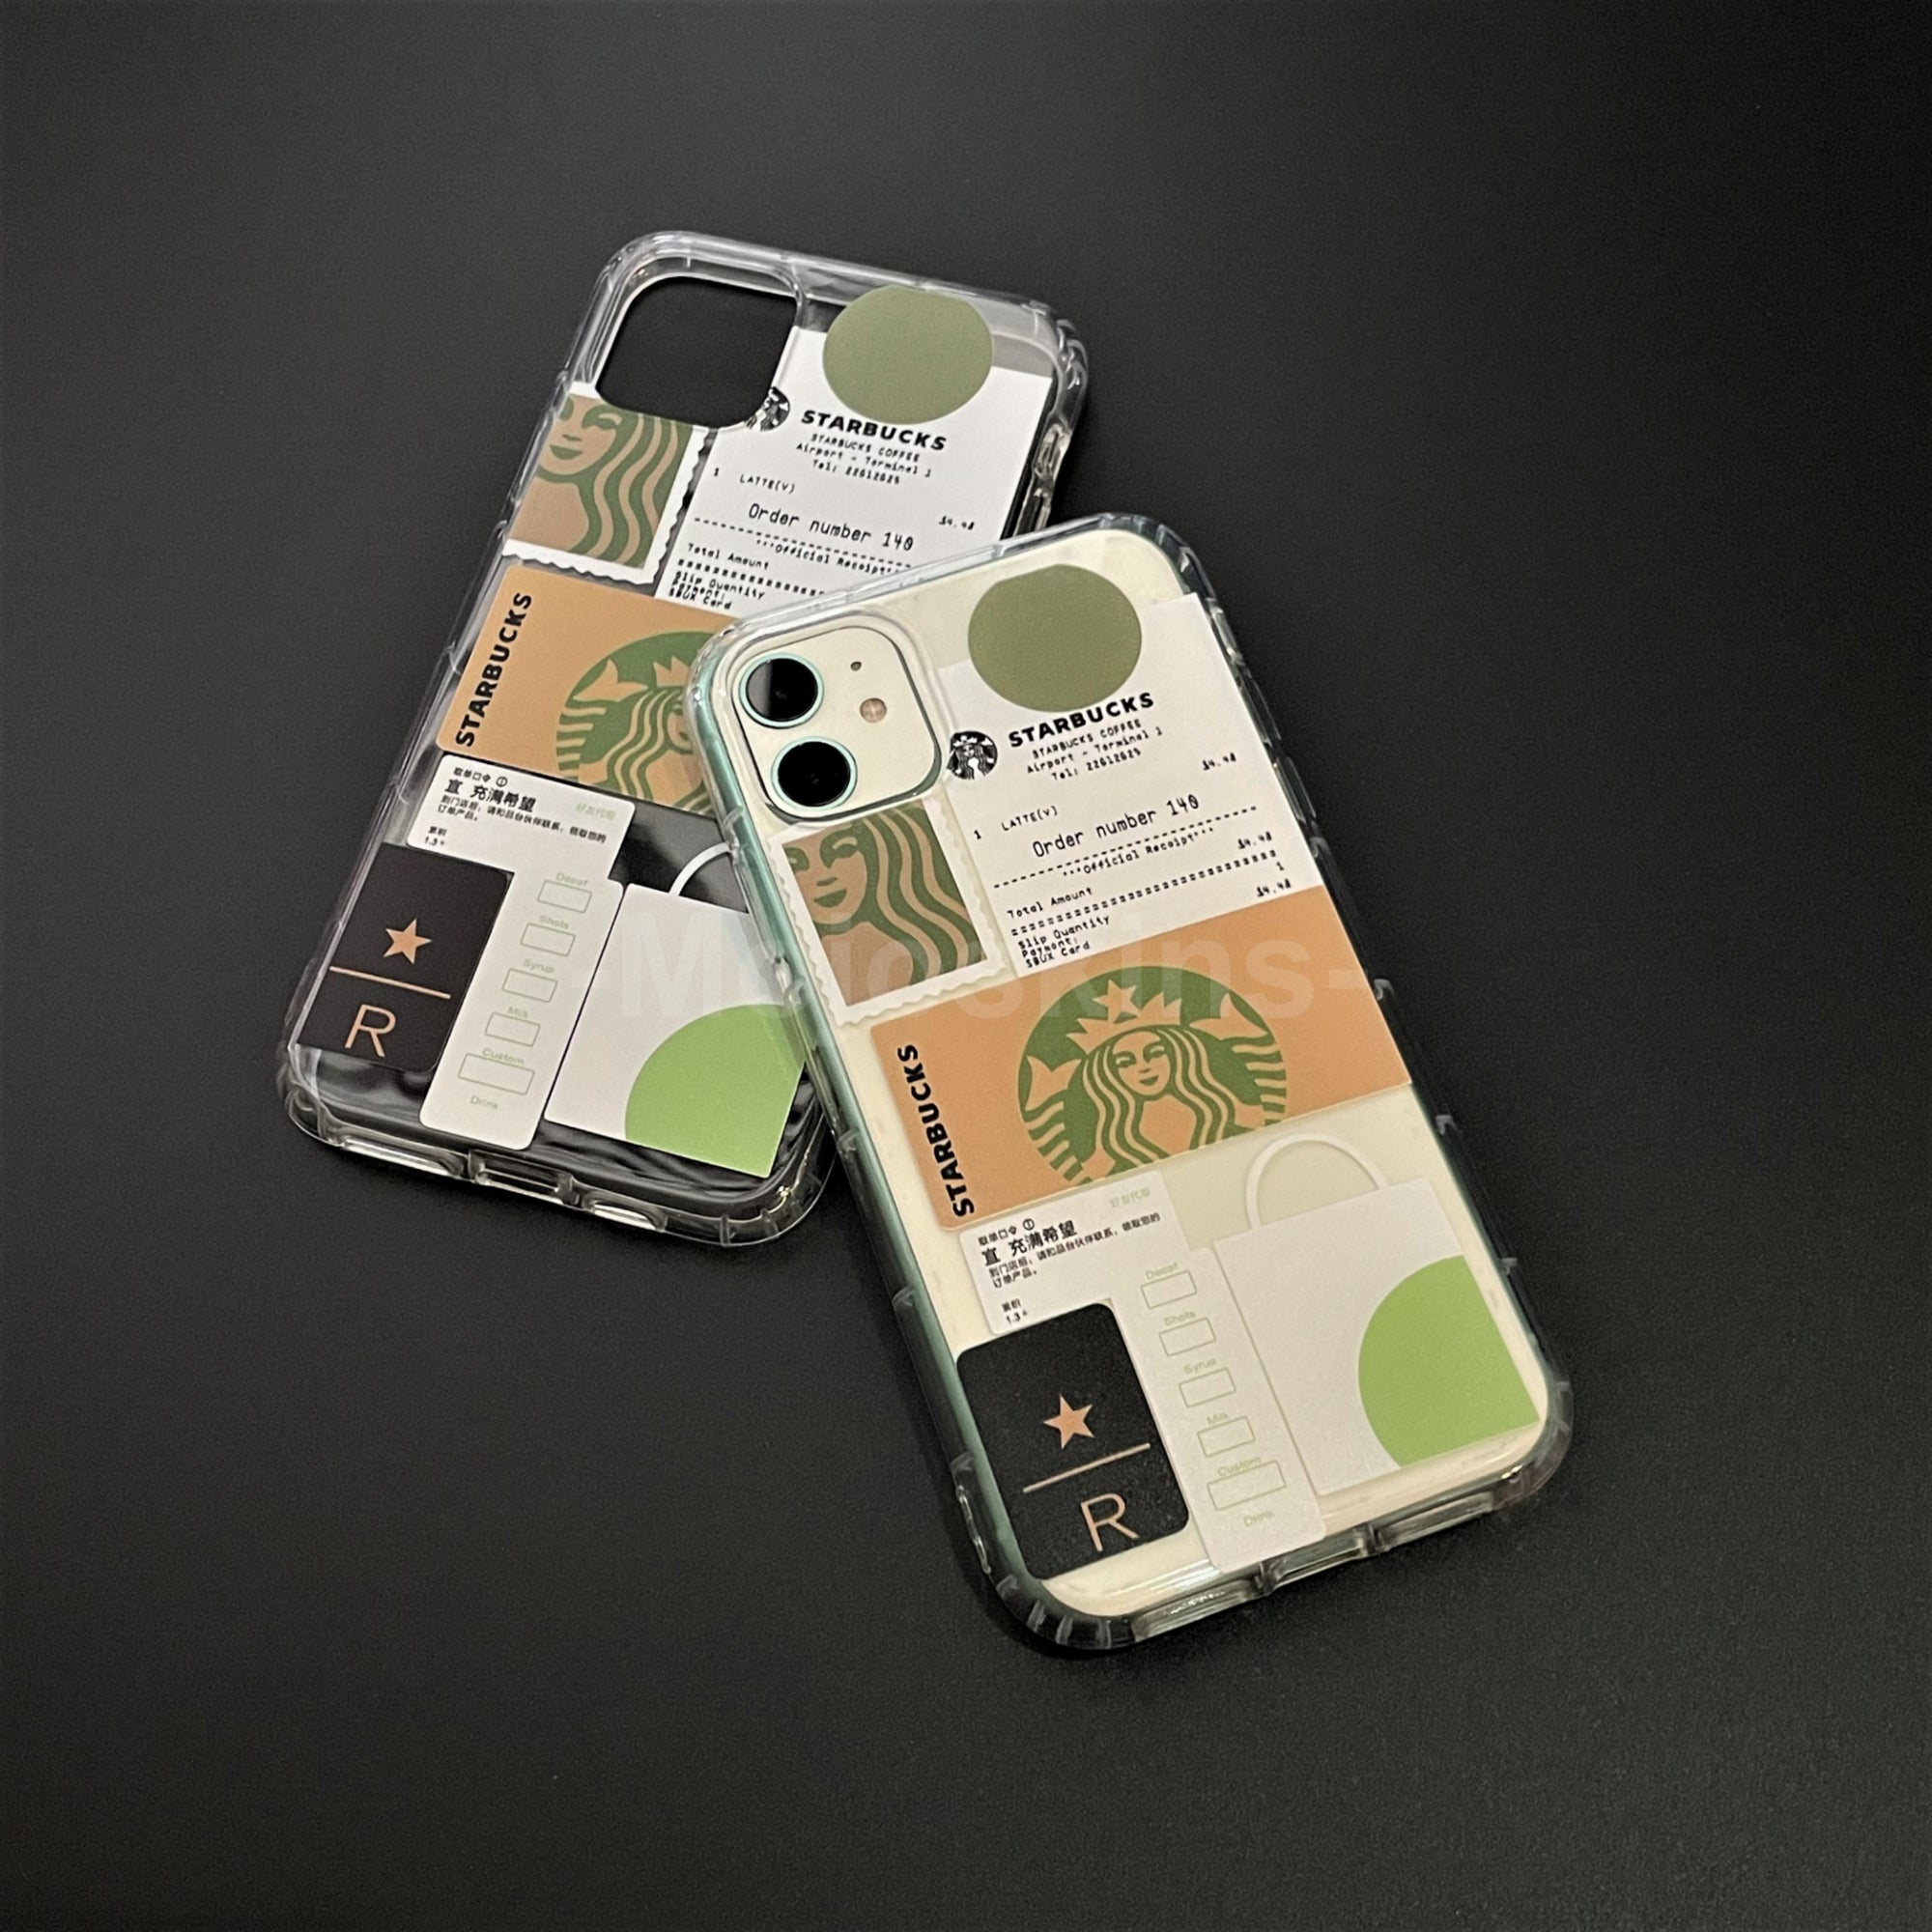 Iphone Starbucks Casing (Transparent)